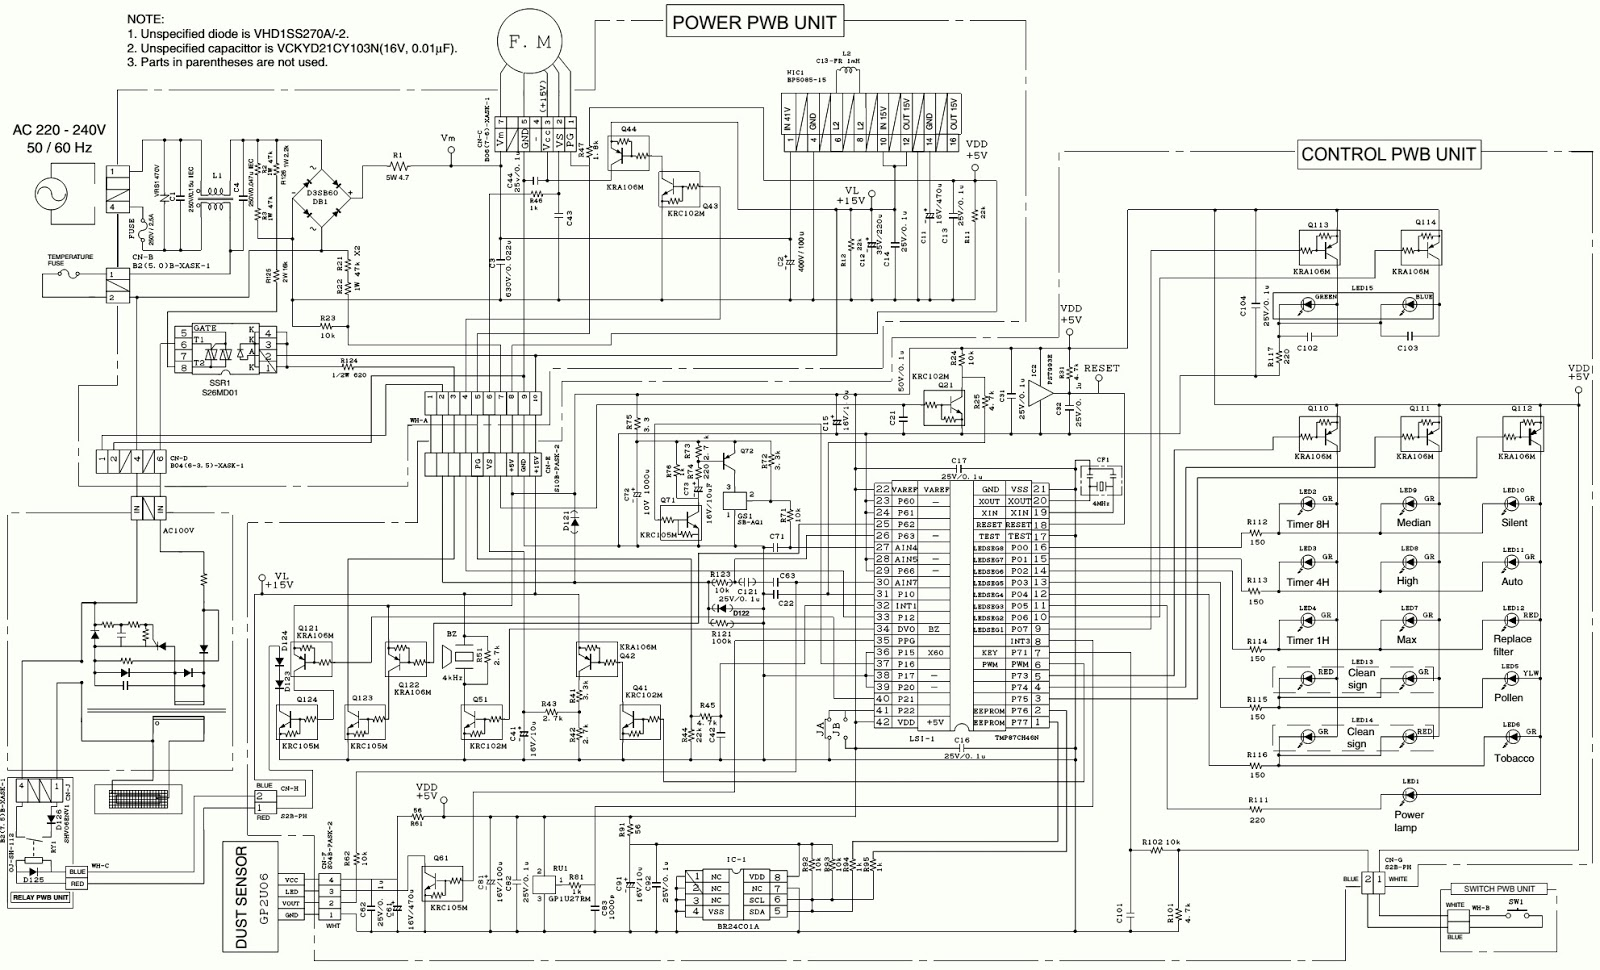 Bmw 330ci Diagram Free Download Wiring Diagrams Pictures on bmw 330ci fuse box diagram